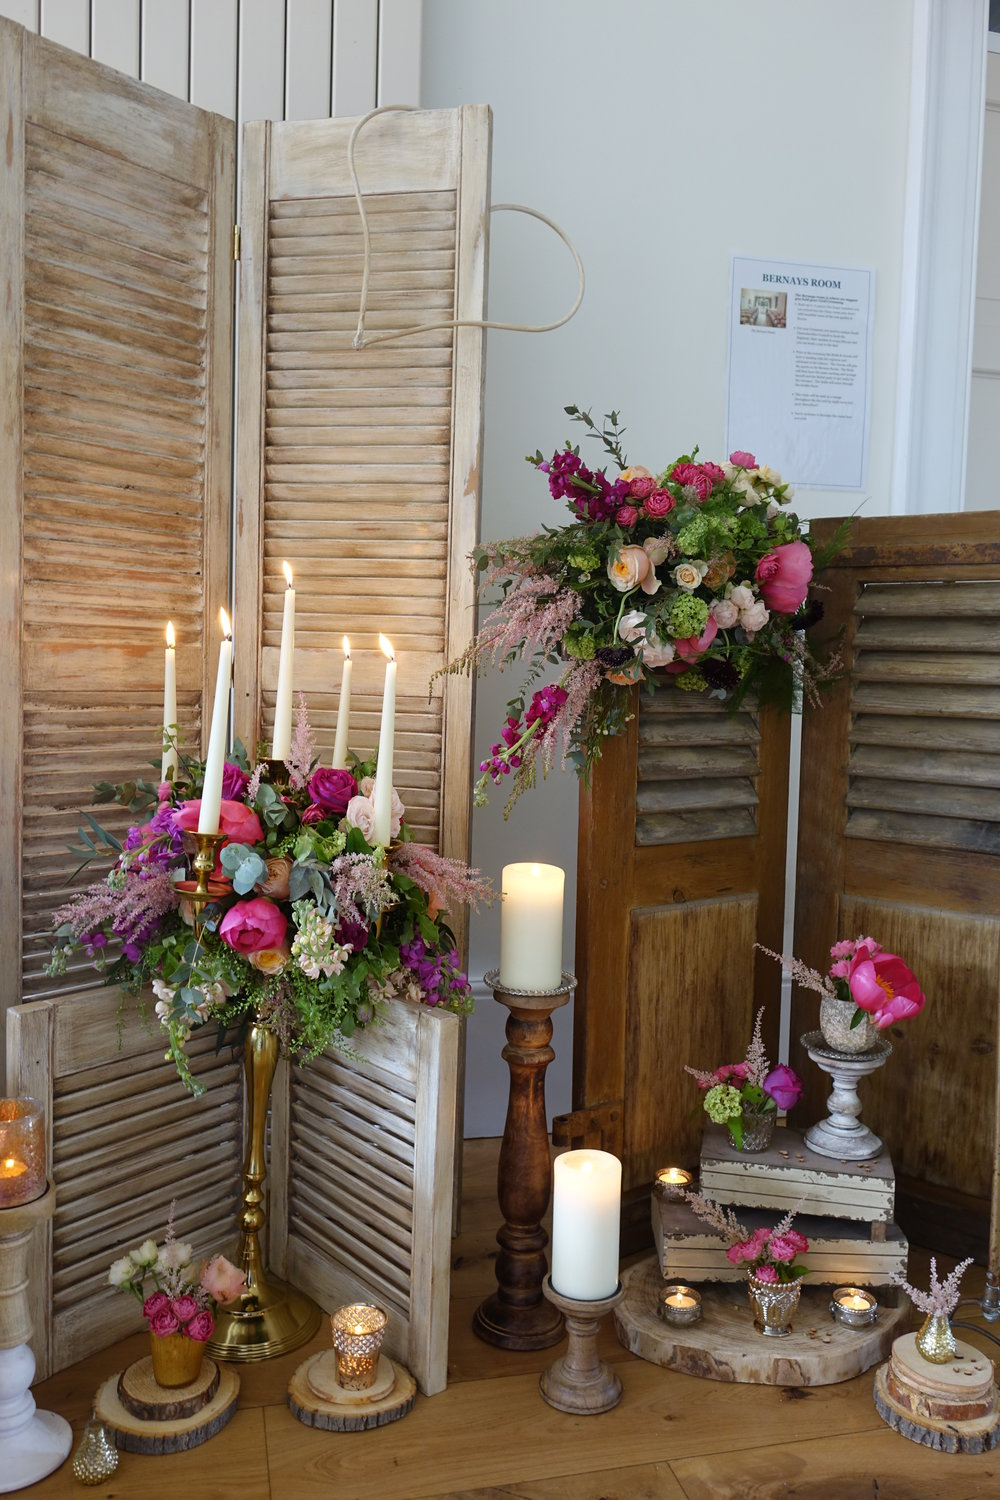 Vintage Shutters from £10.00